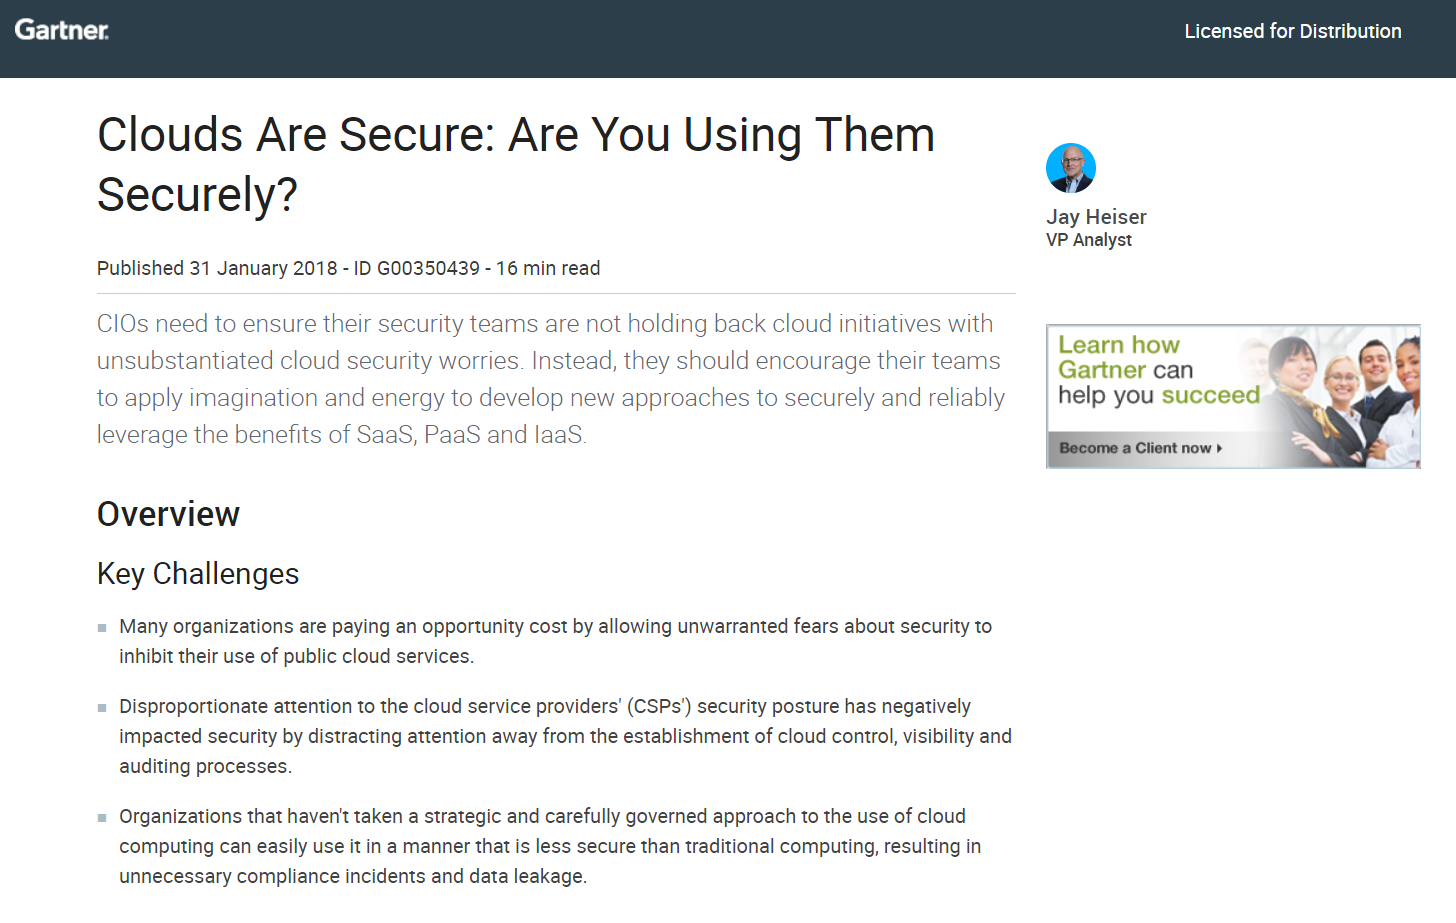 Clouds are Secure: Are you Using Them Securely